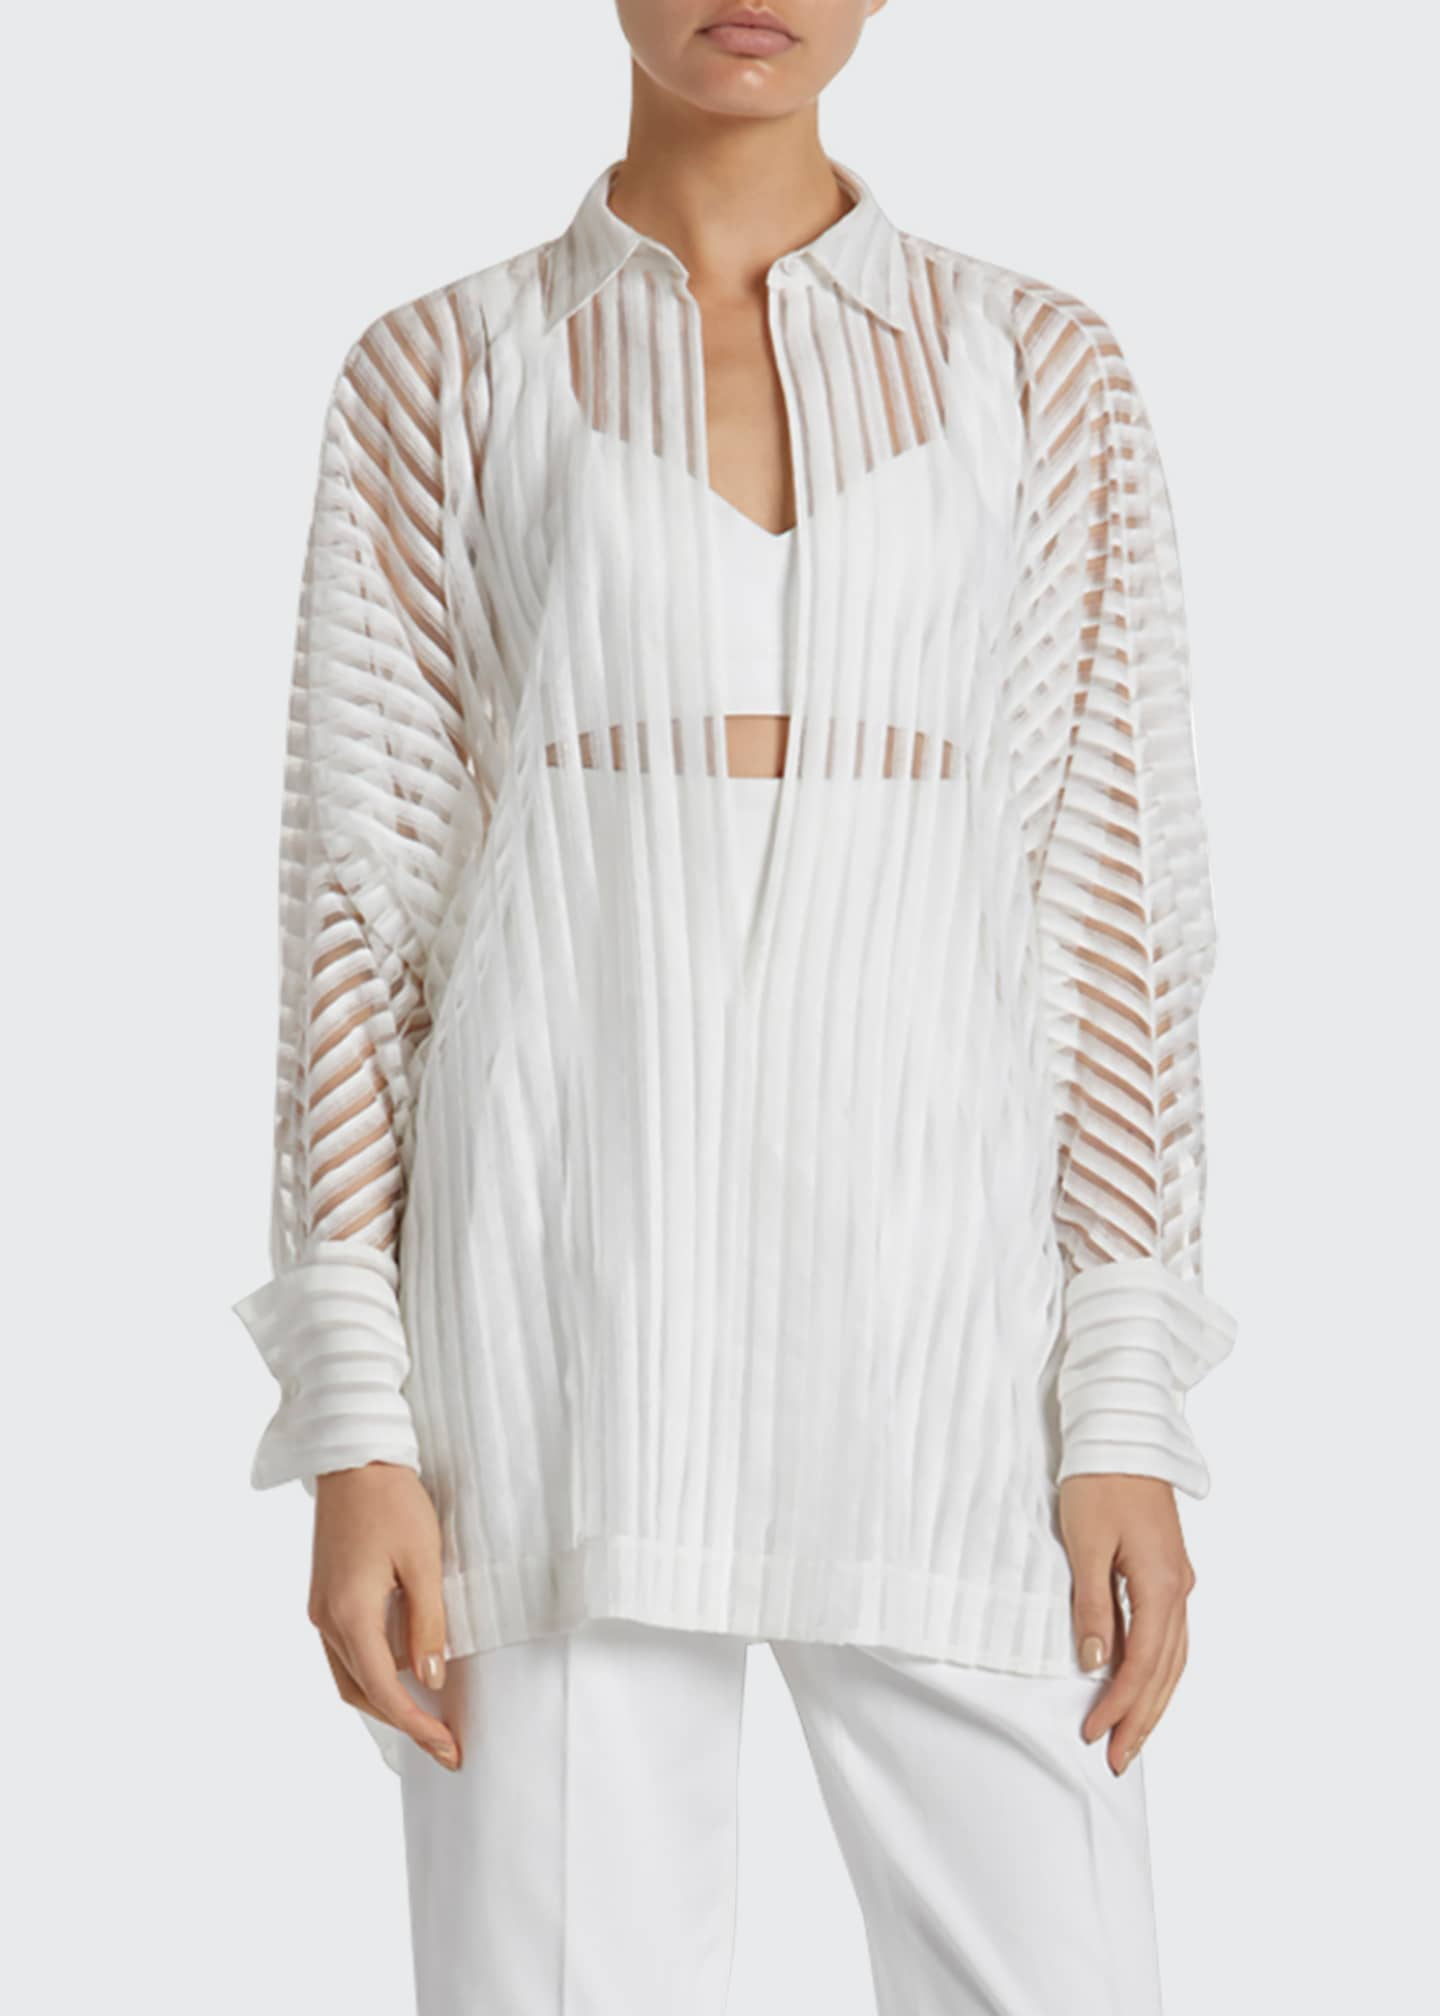 ALAIA Sheer-Striped Oversized Button-Front Shirt